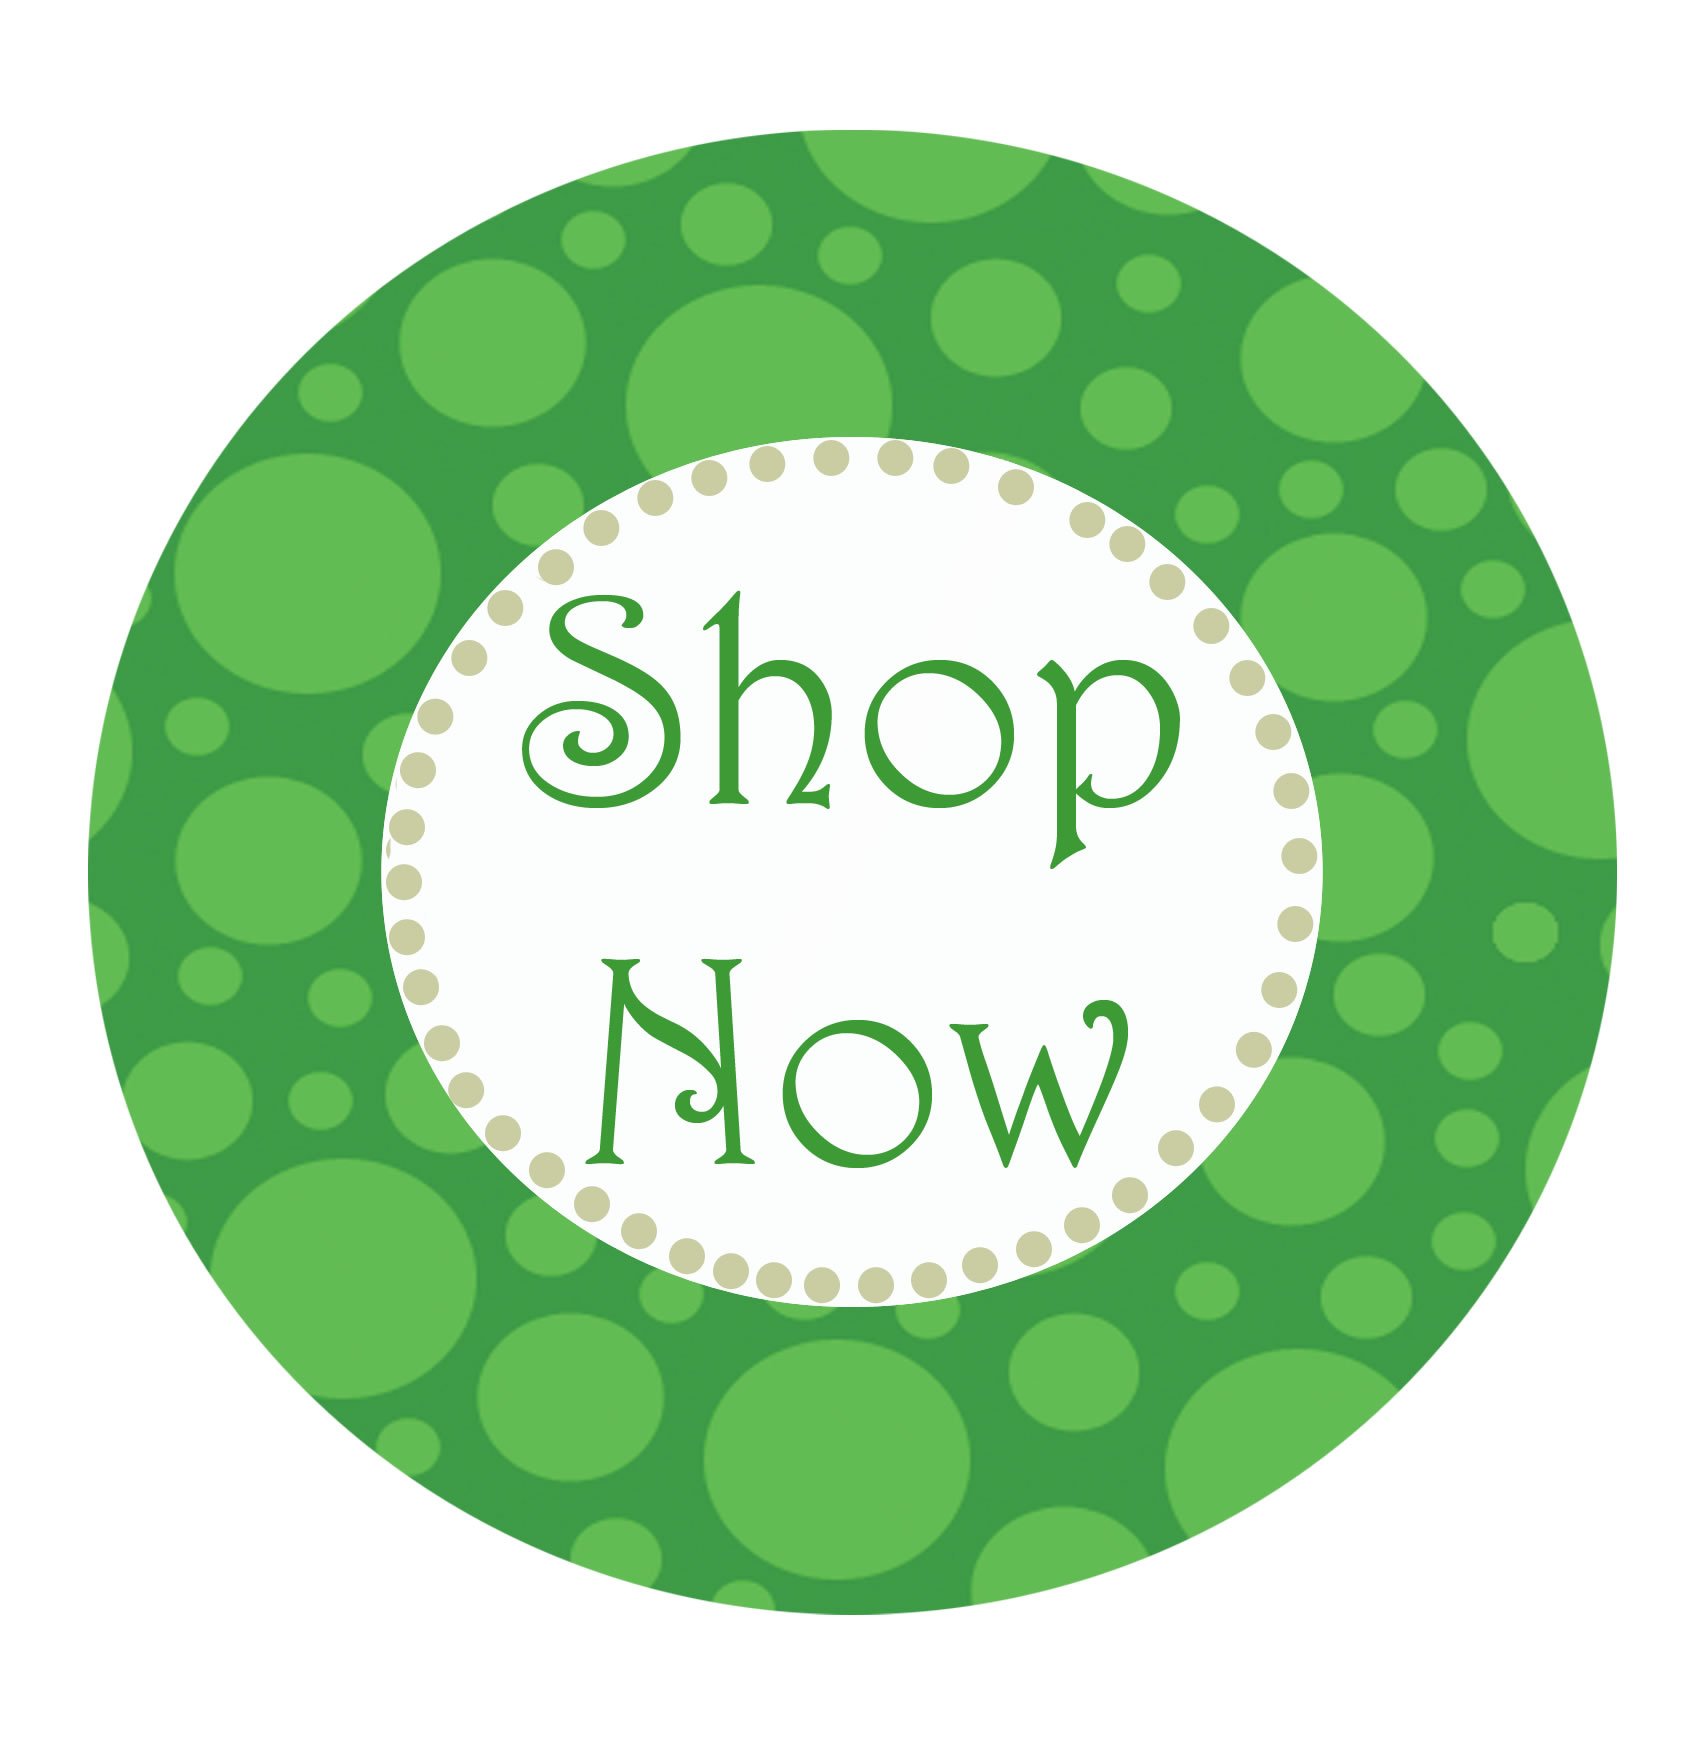 shop-now-green-circle-.jpg